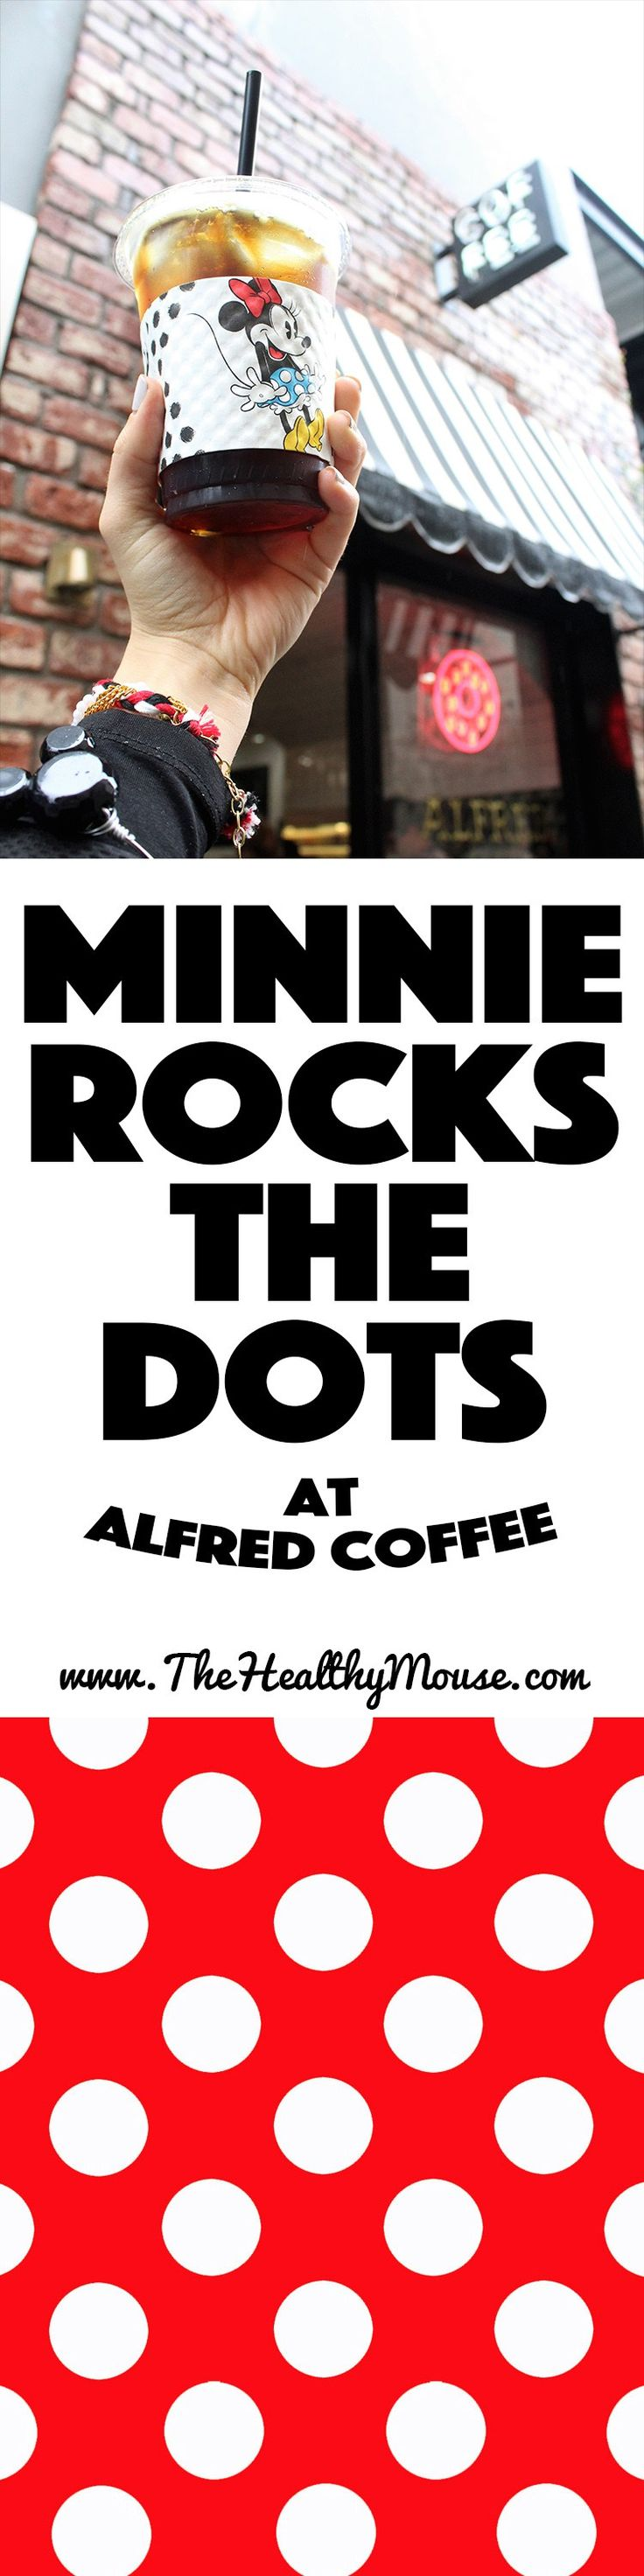 Minnie Rocks the Dots at Alfred Coffee in Hollywood - A fun Minnie takeover with Disney Style! #RocktheDots